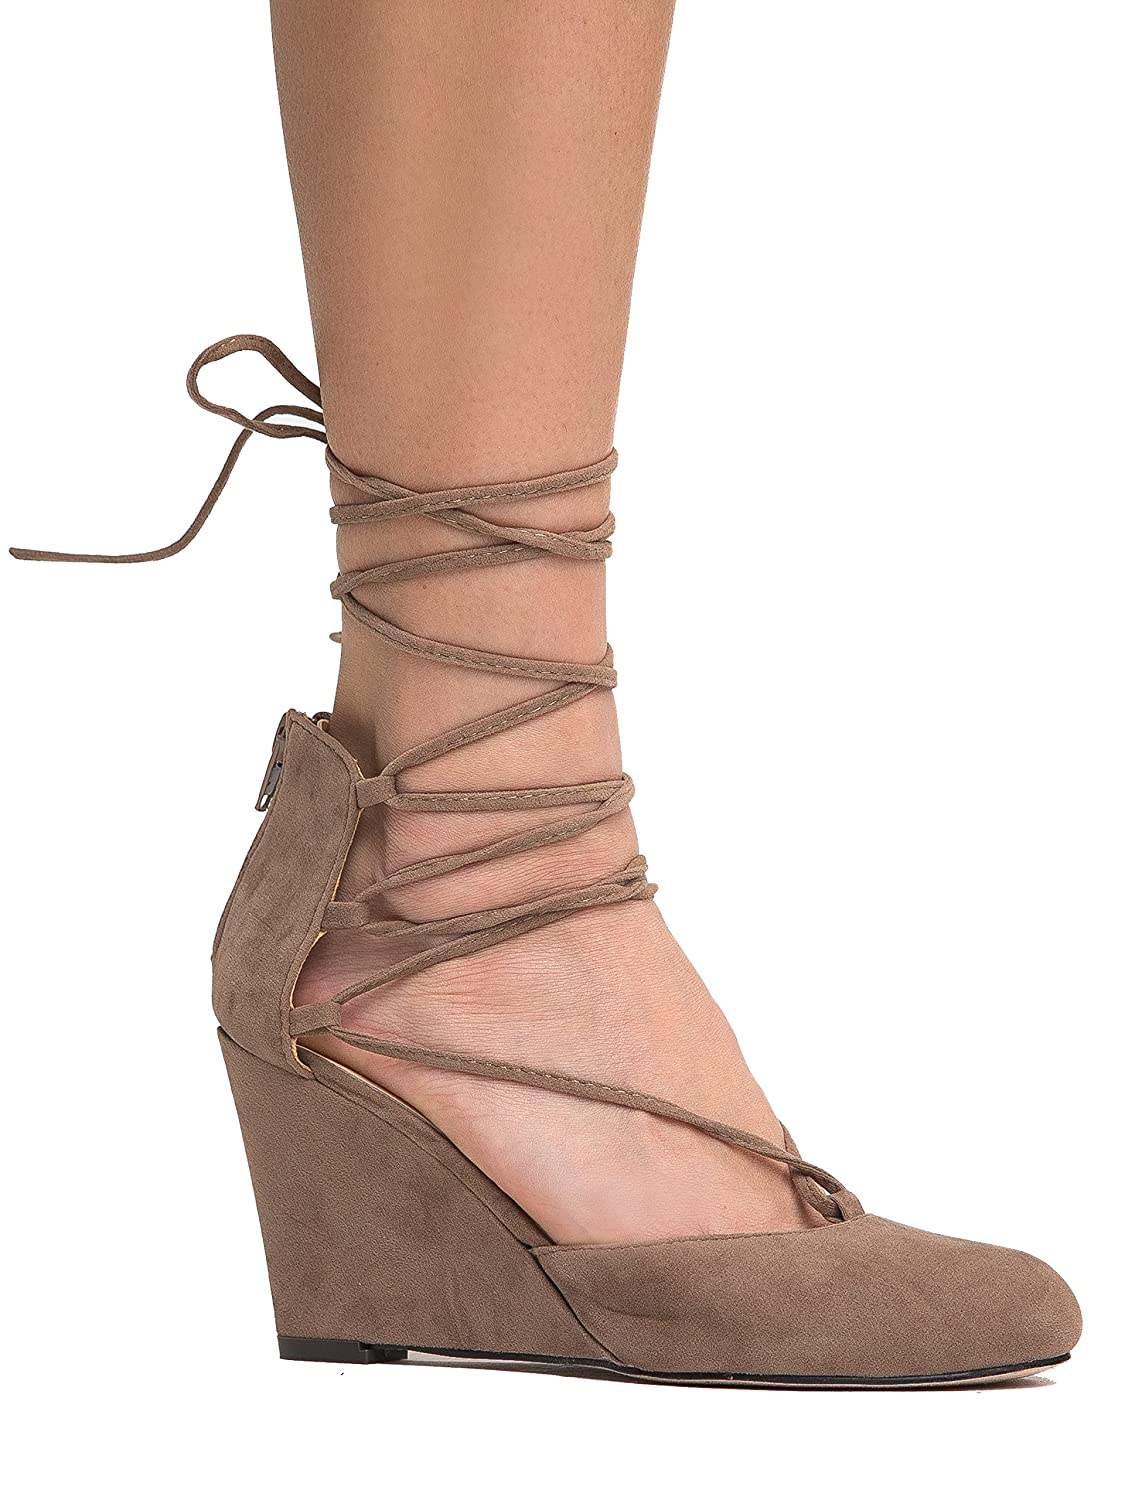 J. Adams Lace Up Low Wedge Shoe - Round Toe Heel - Trendy Strappy Comfortable Heels - Muffin by B01I5QV9HI 6.5 B(M) US|Taupe